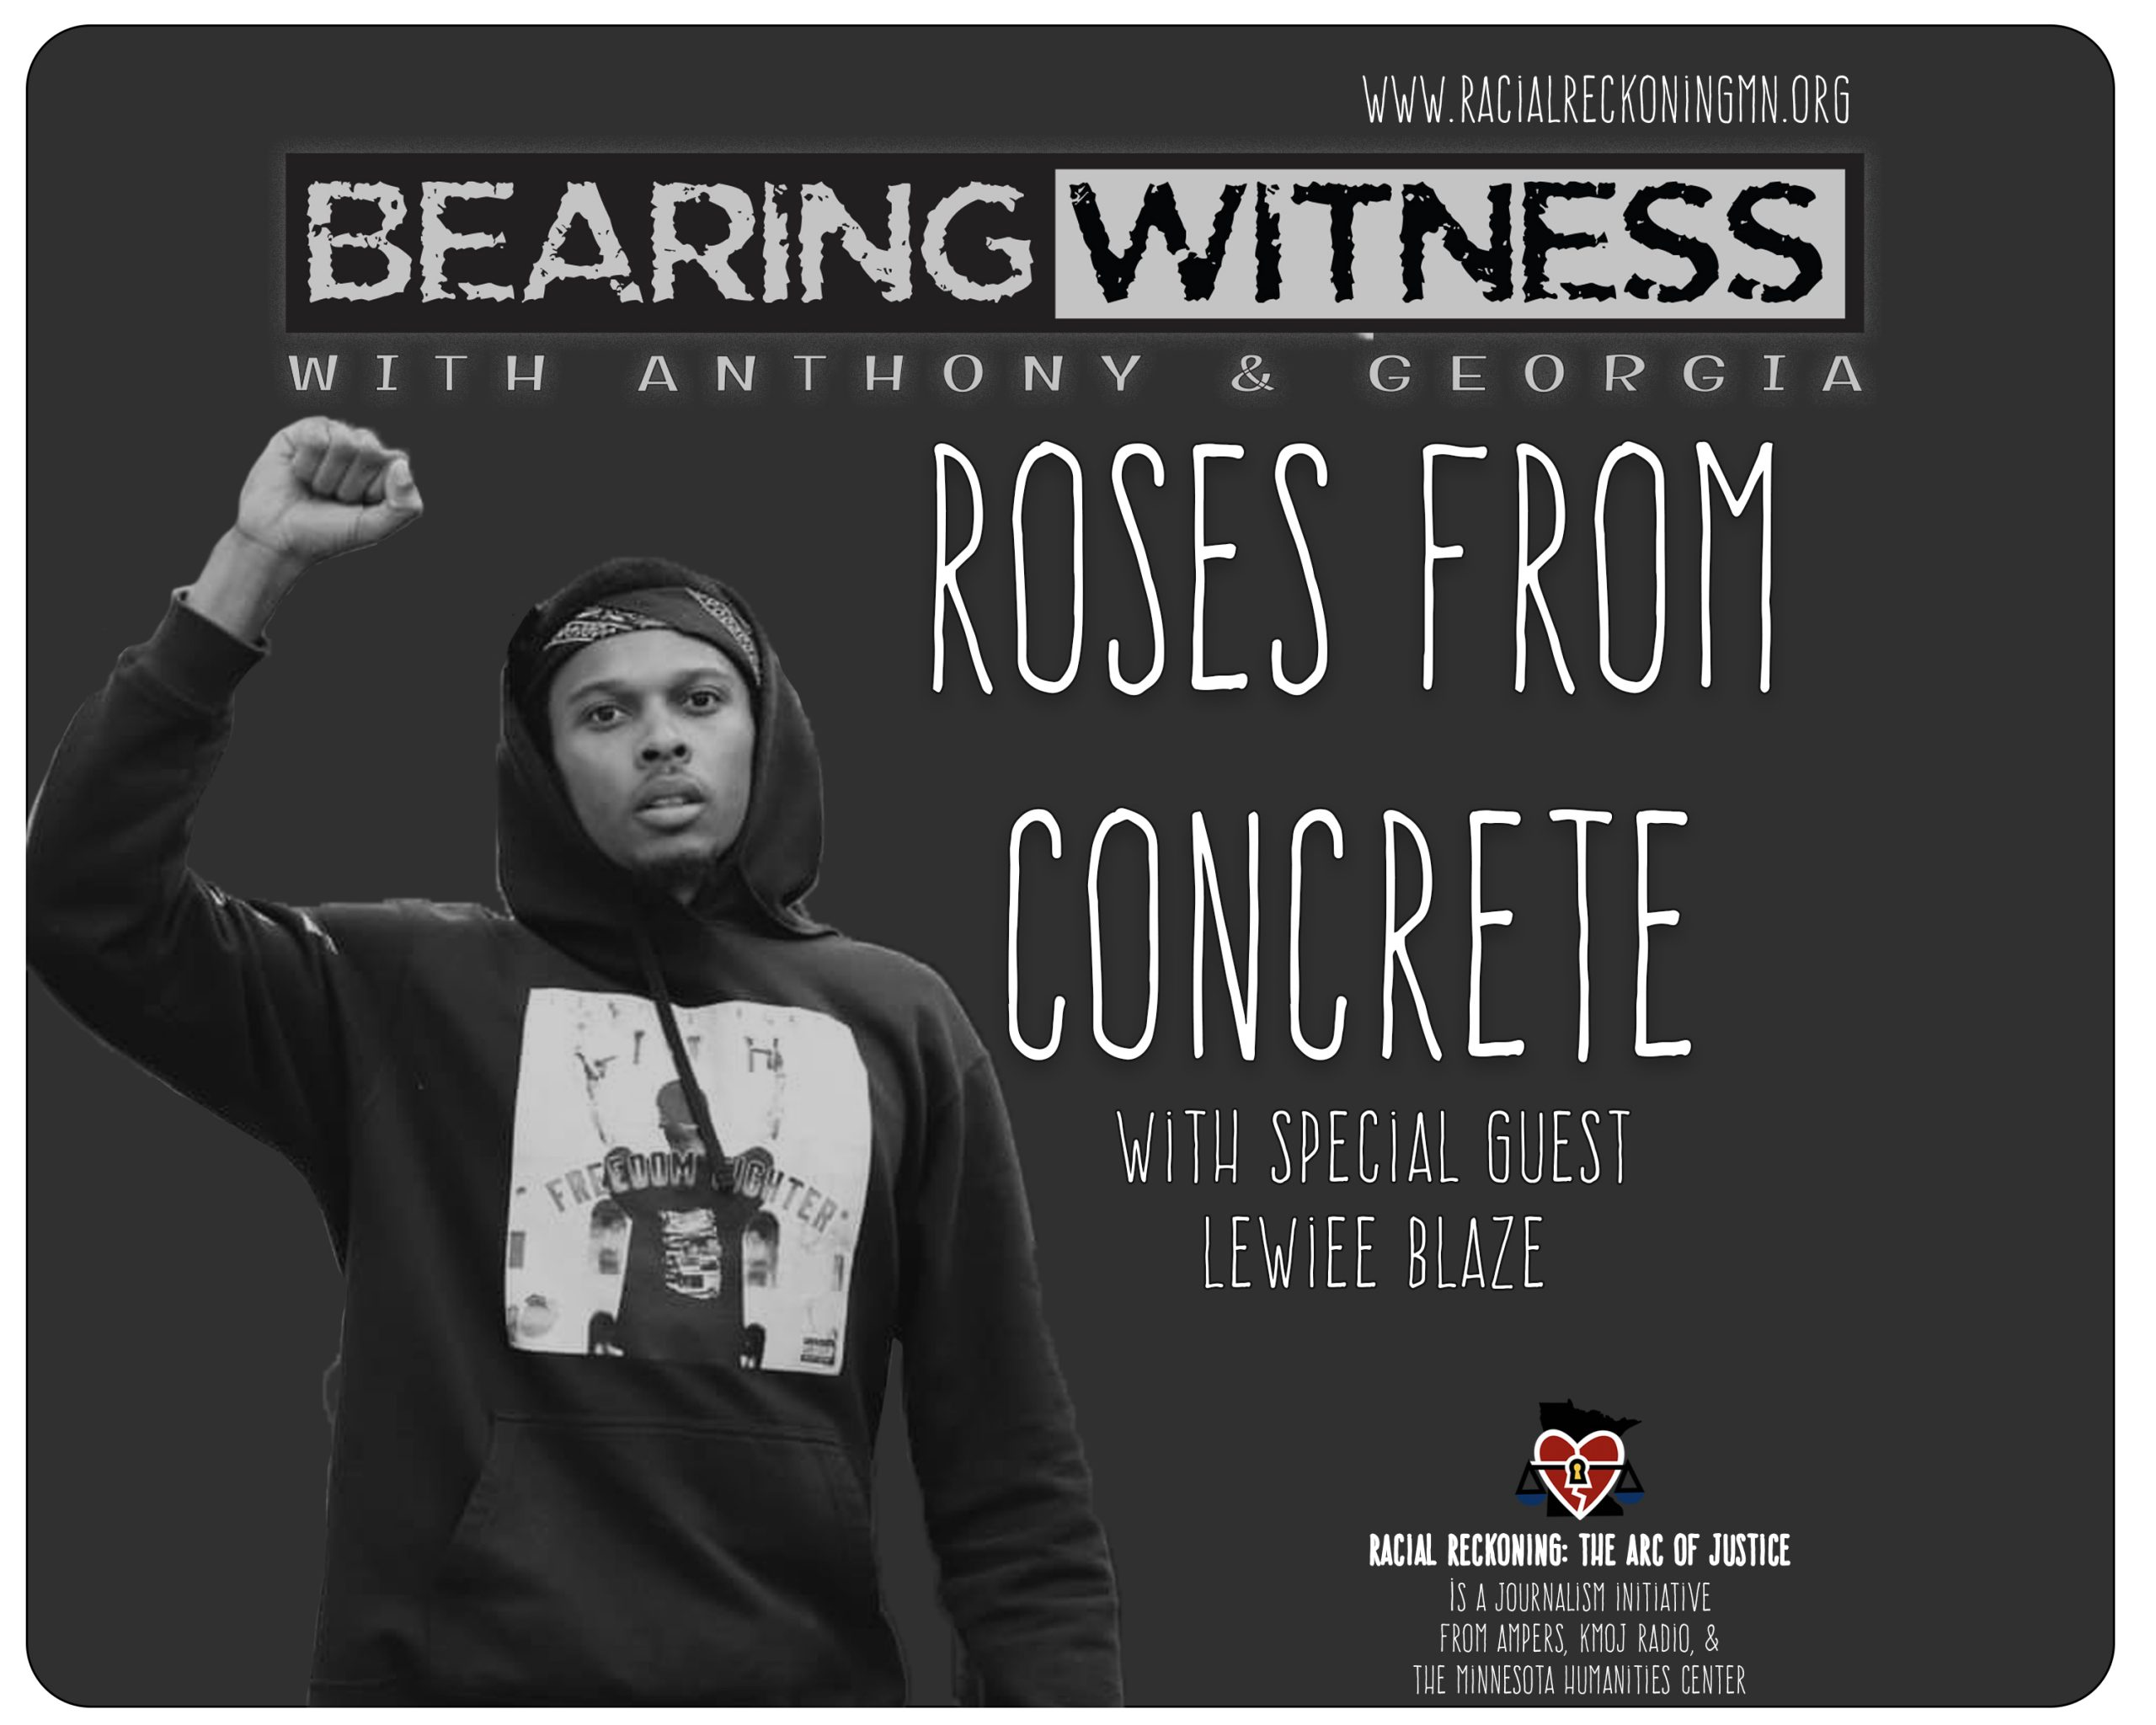 Roses from Concrete